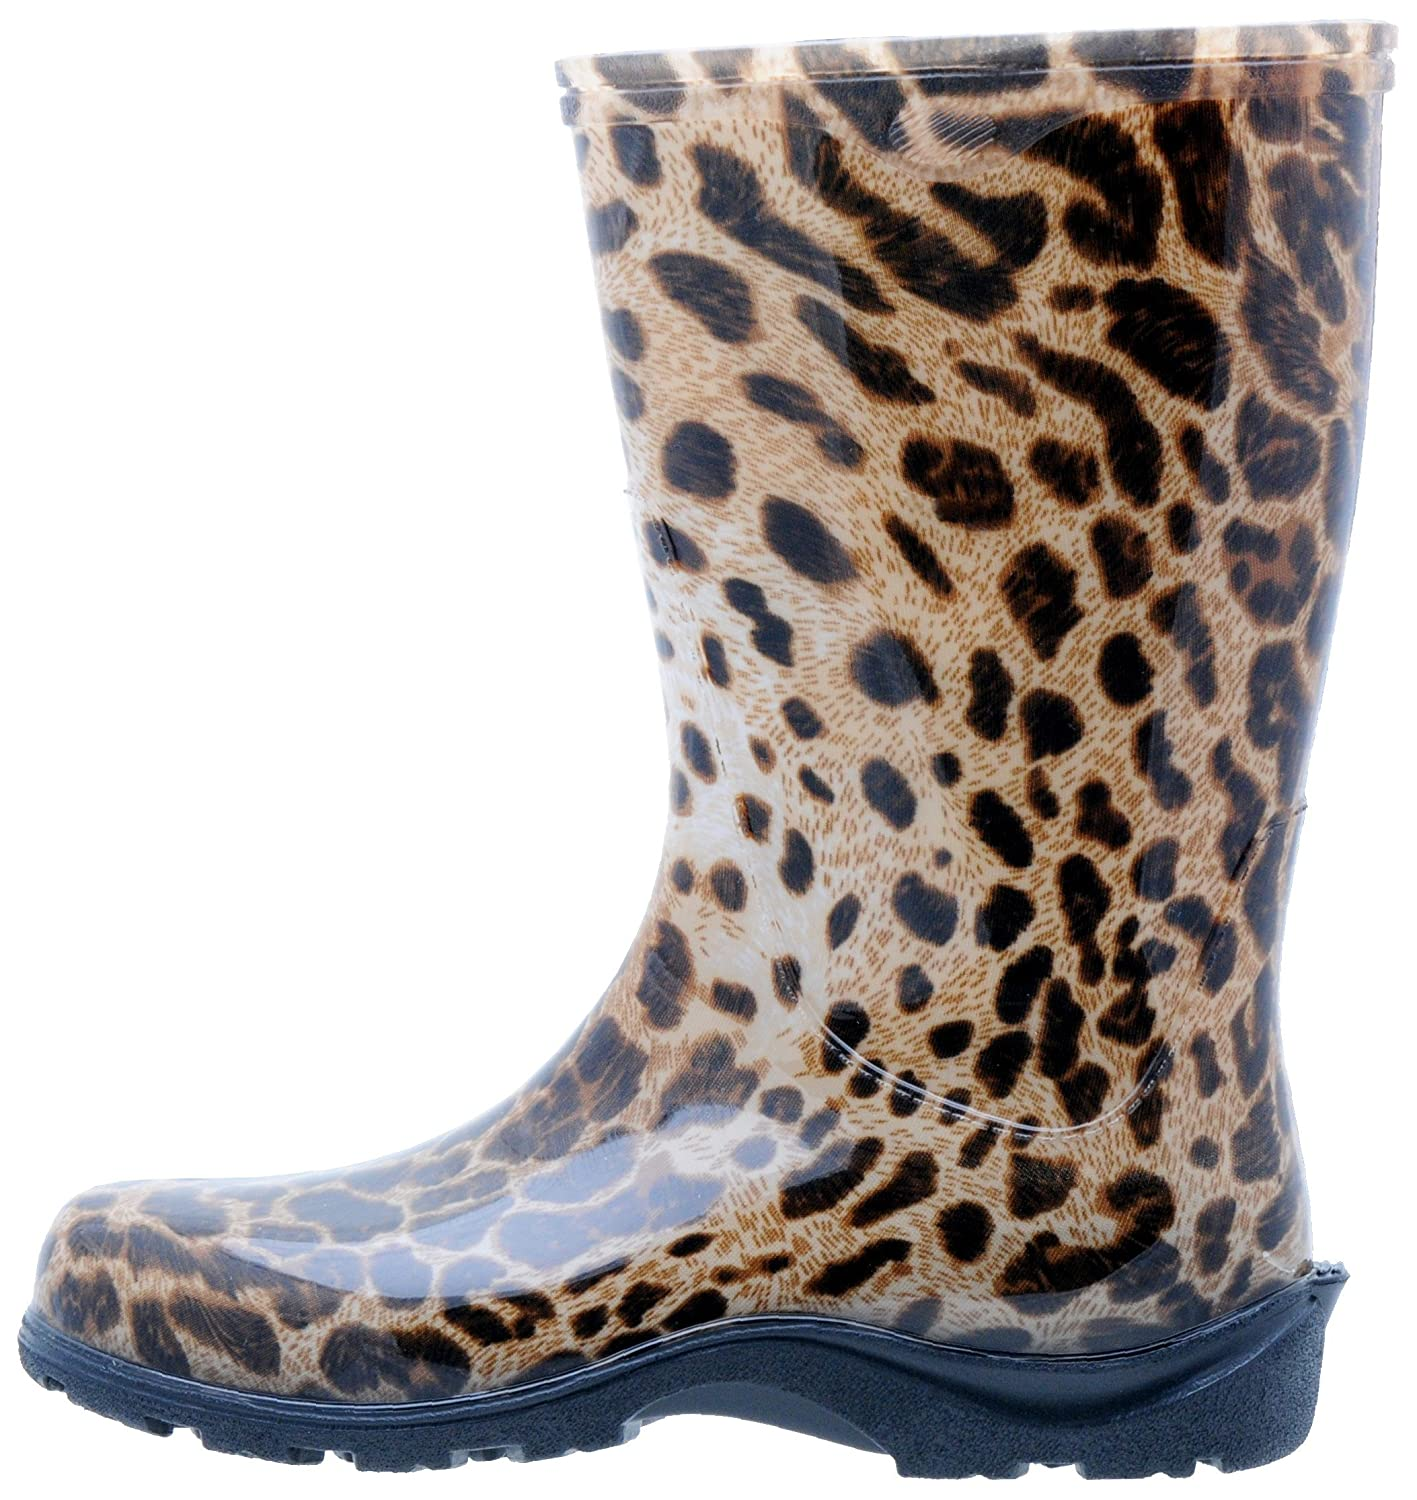 garden boots womens. Amazon.com: Sloggers Women\u0027s Rain And Garden Boot With \ Boots Womens